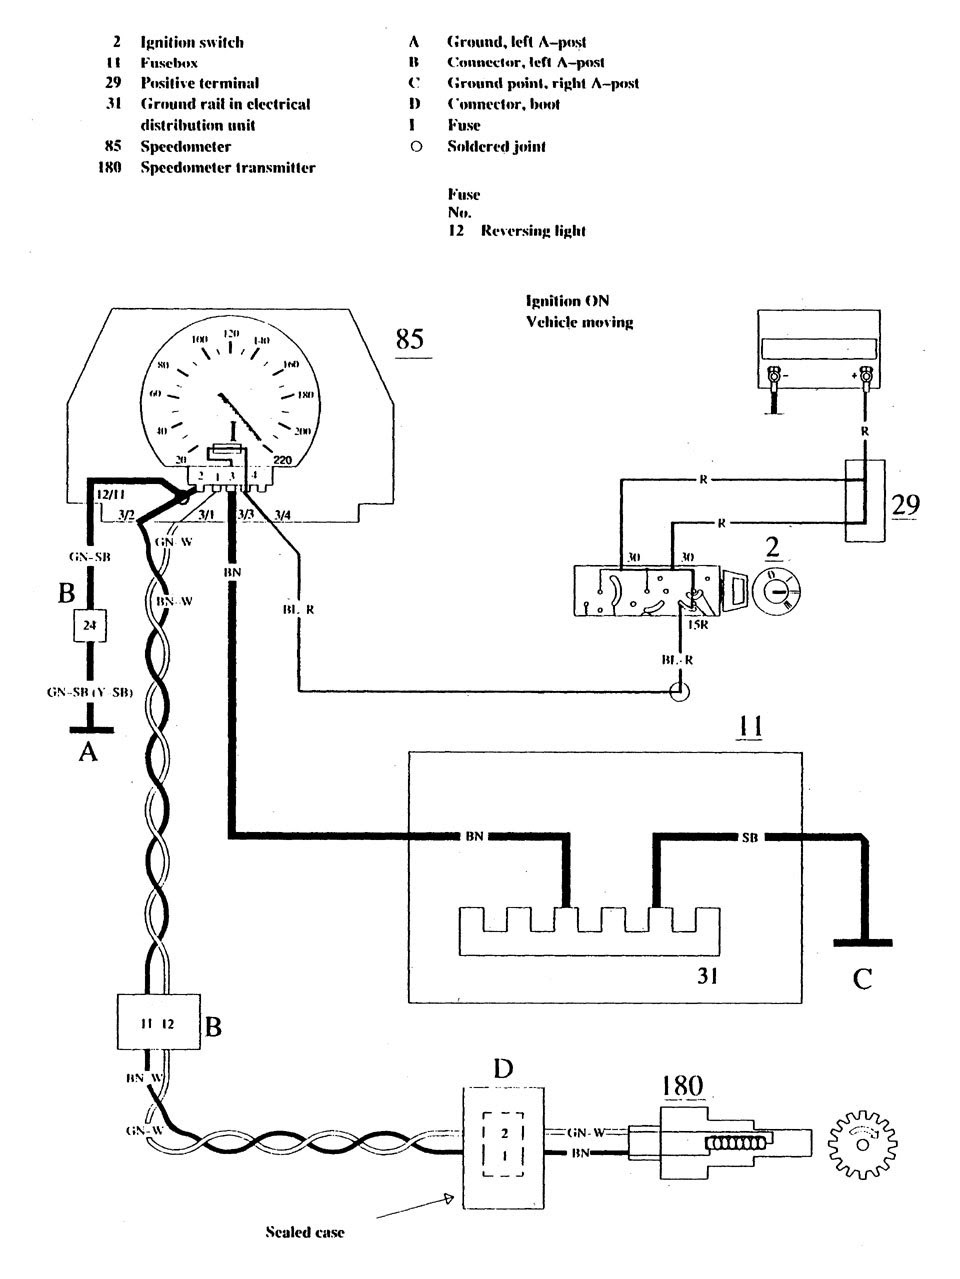 1993 240 Alt Wiring Diagram Earbud With Mic Wiring Diagram Begeboy Wiring Diagram Source